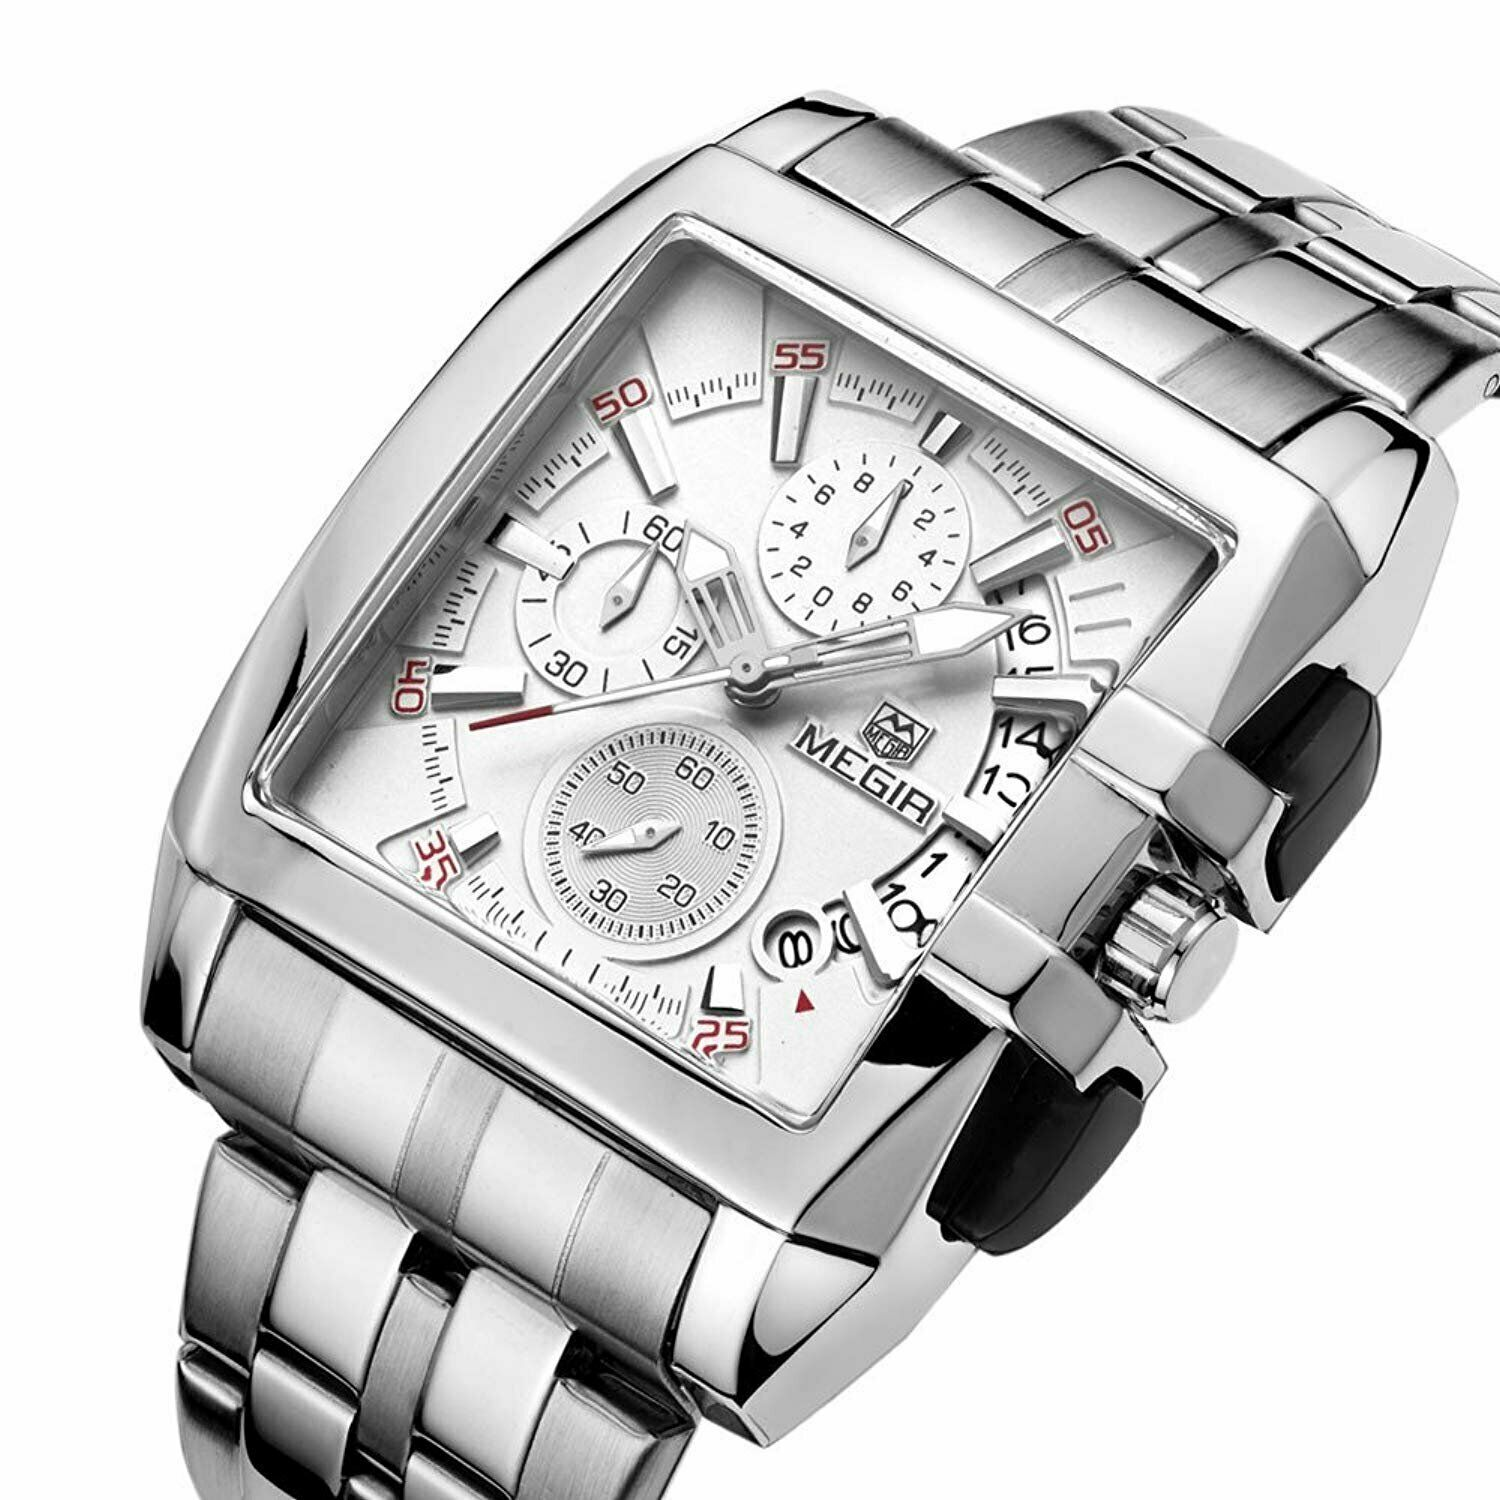 MEGIR Square Big Dial Wrist Watch Men Business Chronograph Quartz Stainless Band